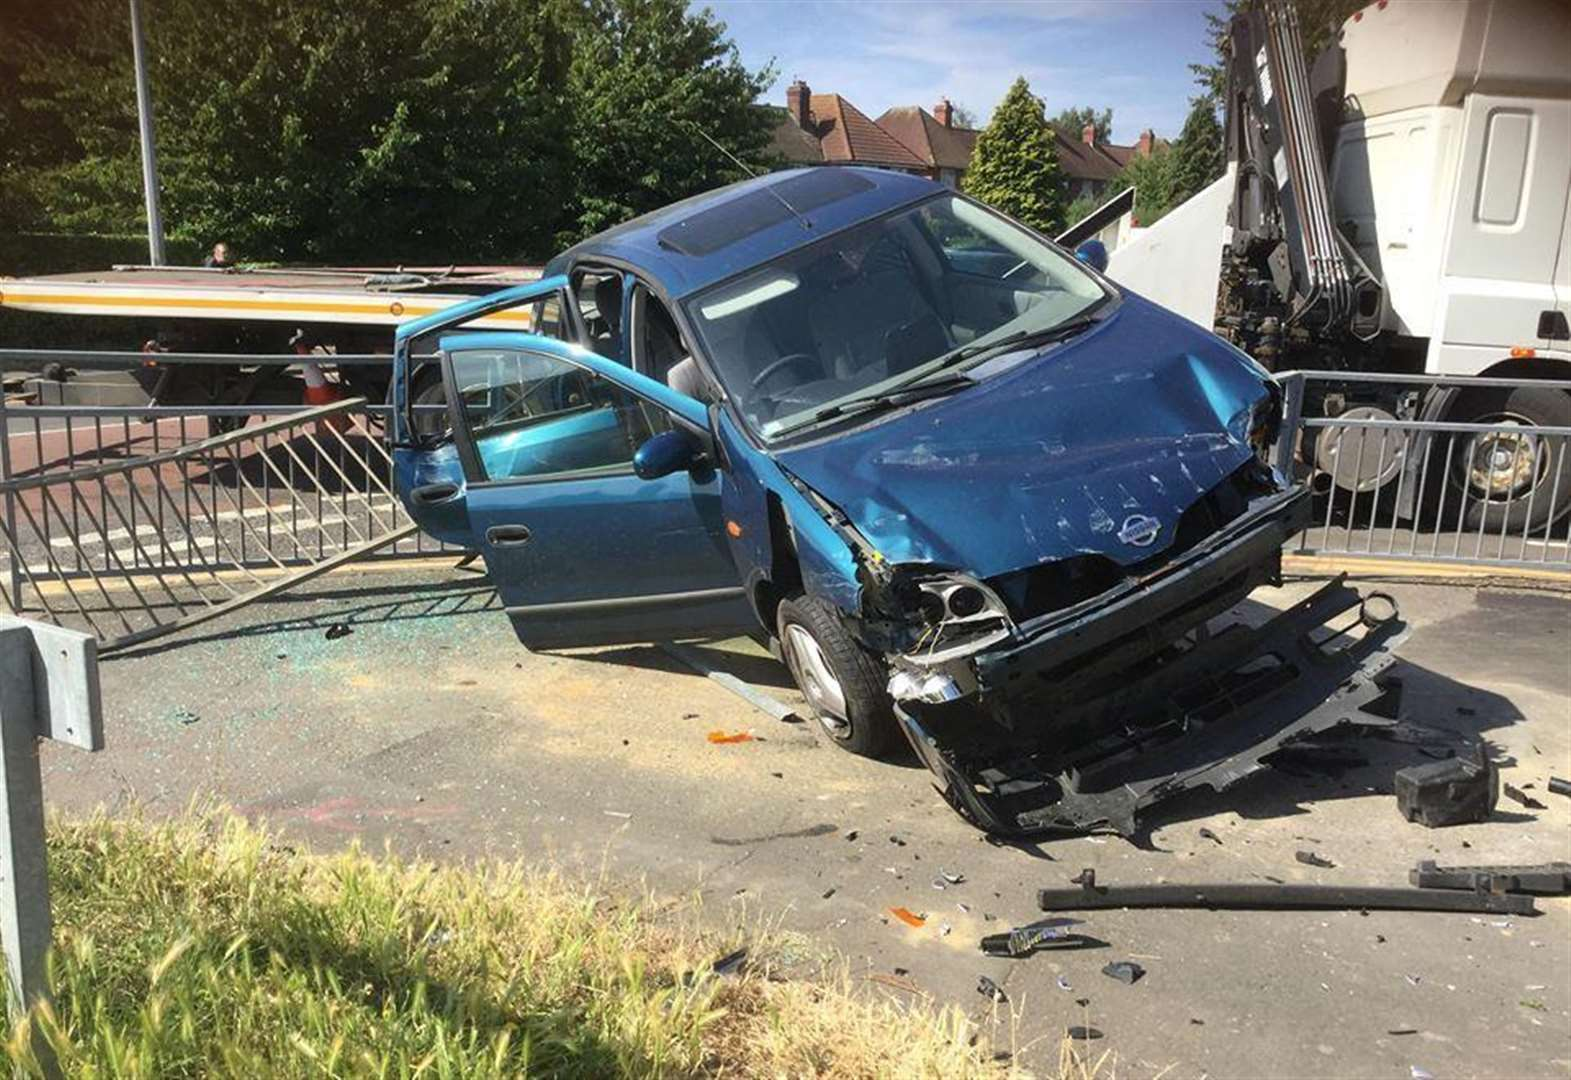 Update: Car ploughs through railings after two vehicle crash in Grantham